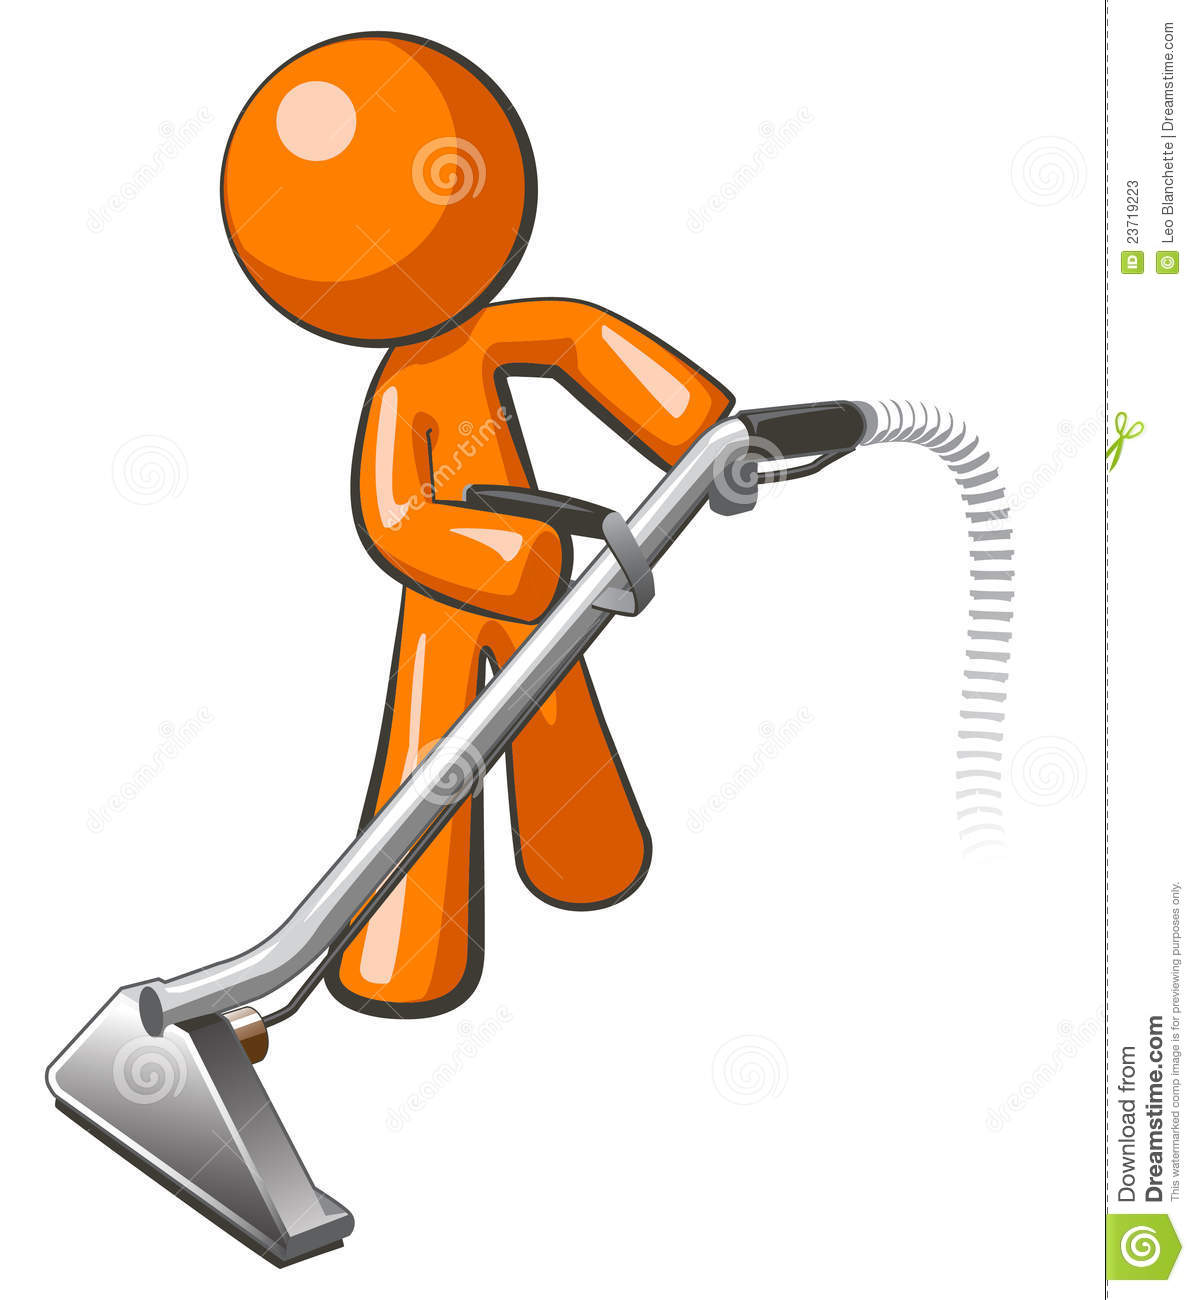 Carpet Cleaning Wand Clip Art Wwwpixsharkcom Images, Carpet Man.